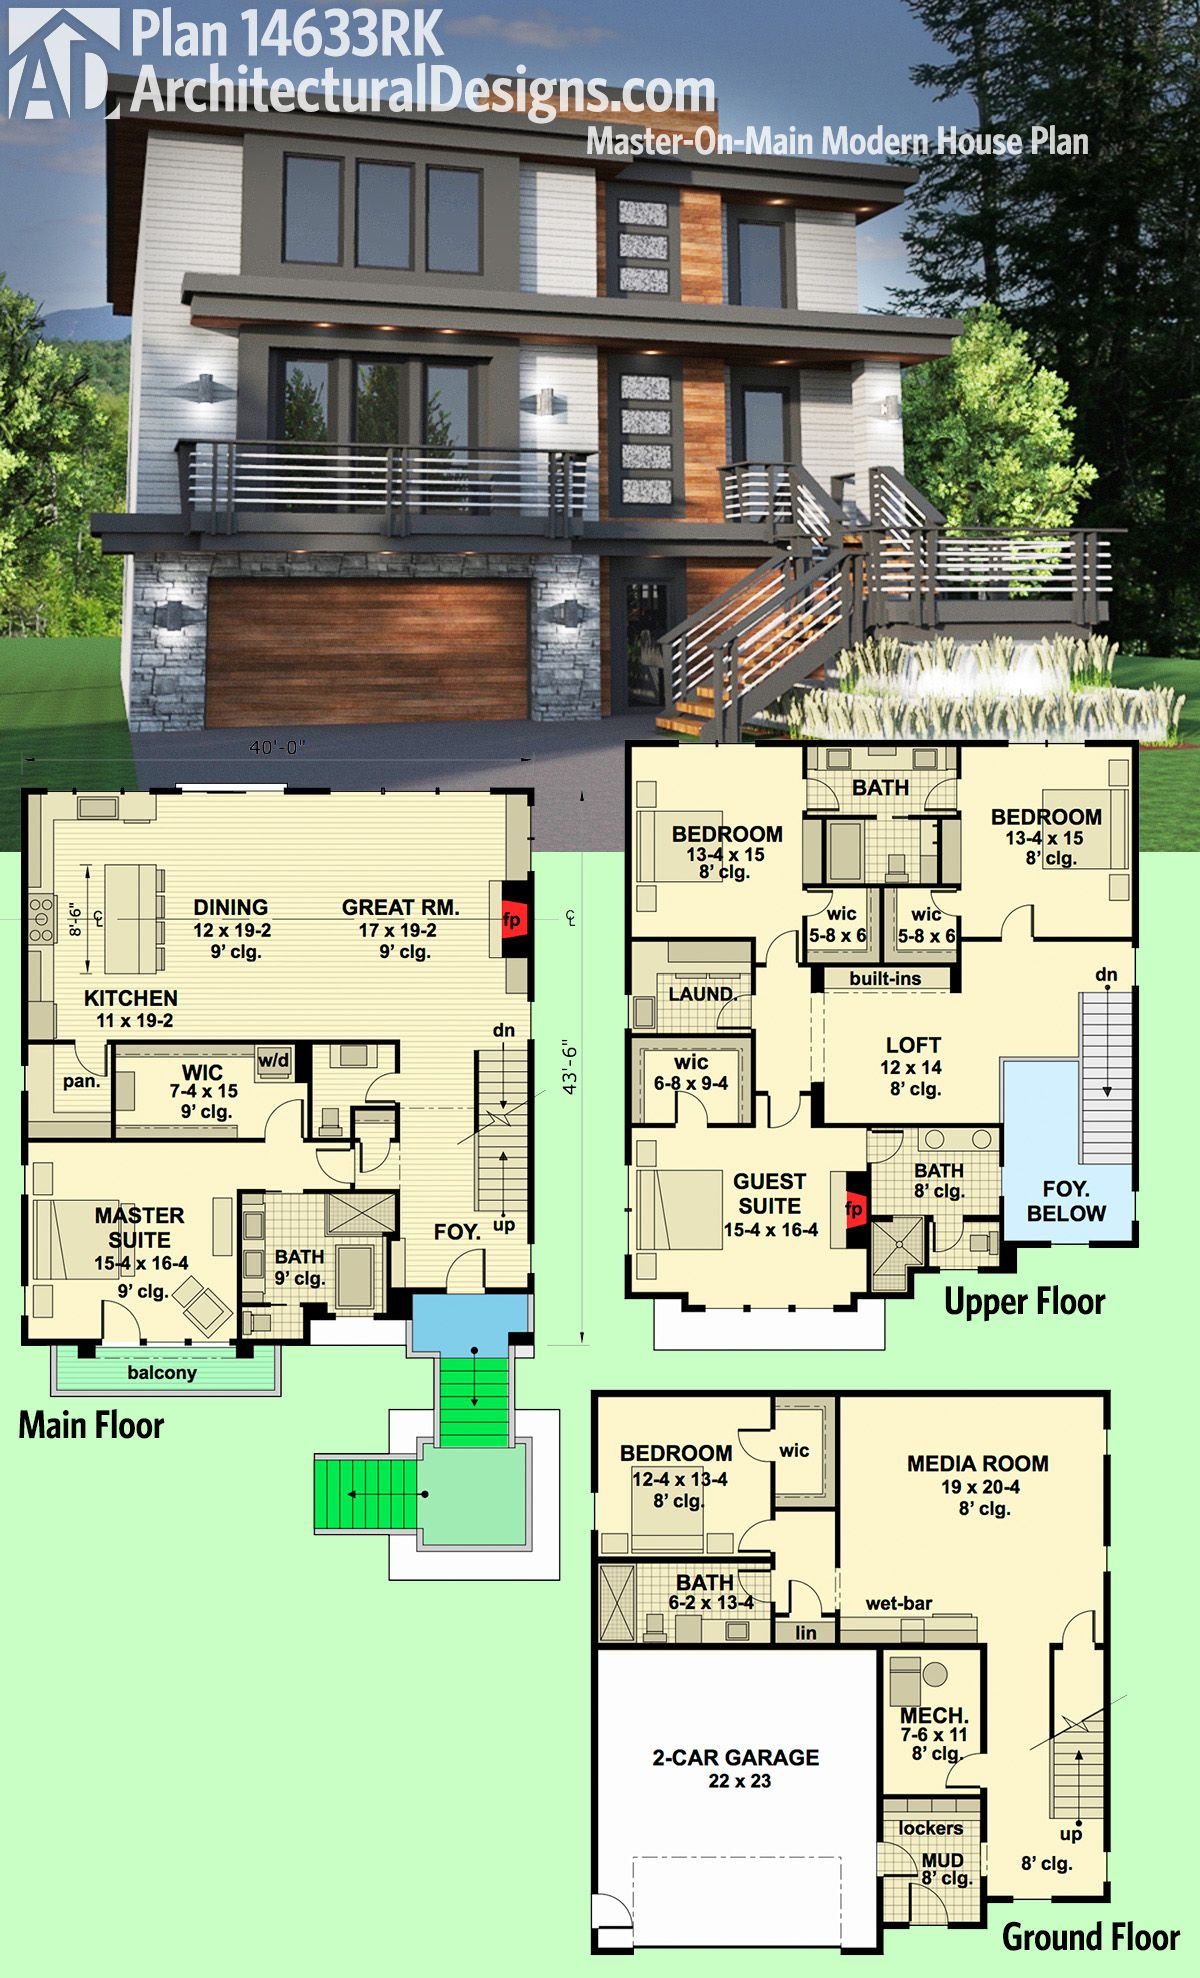 Plan 14633rk master on main modern house plan modern for Modern house plans 3 story